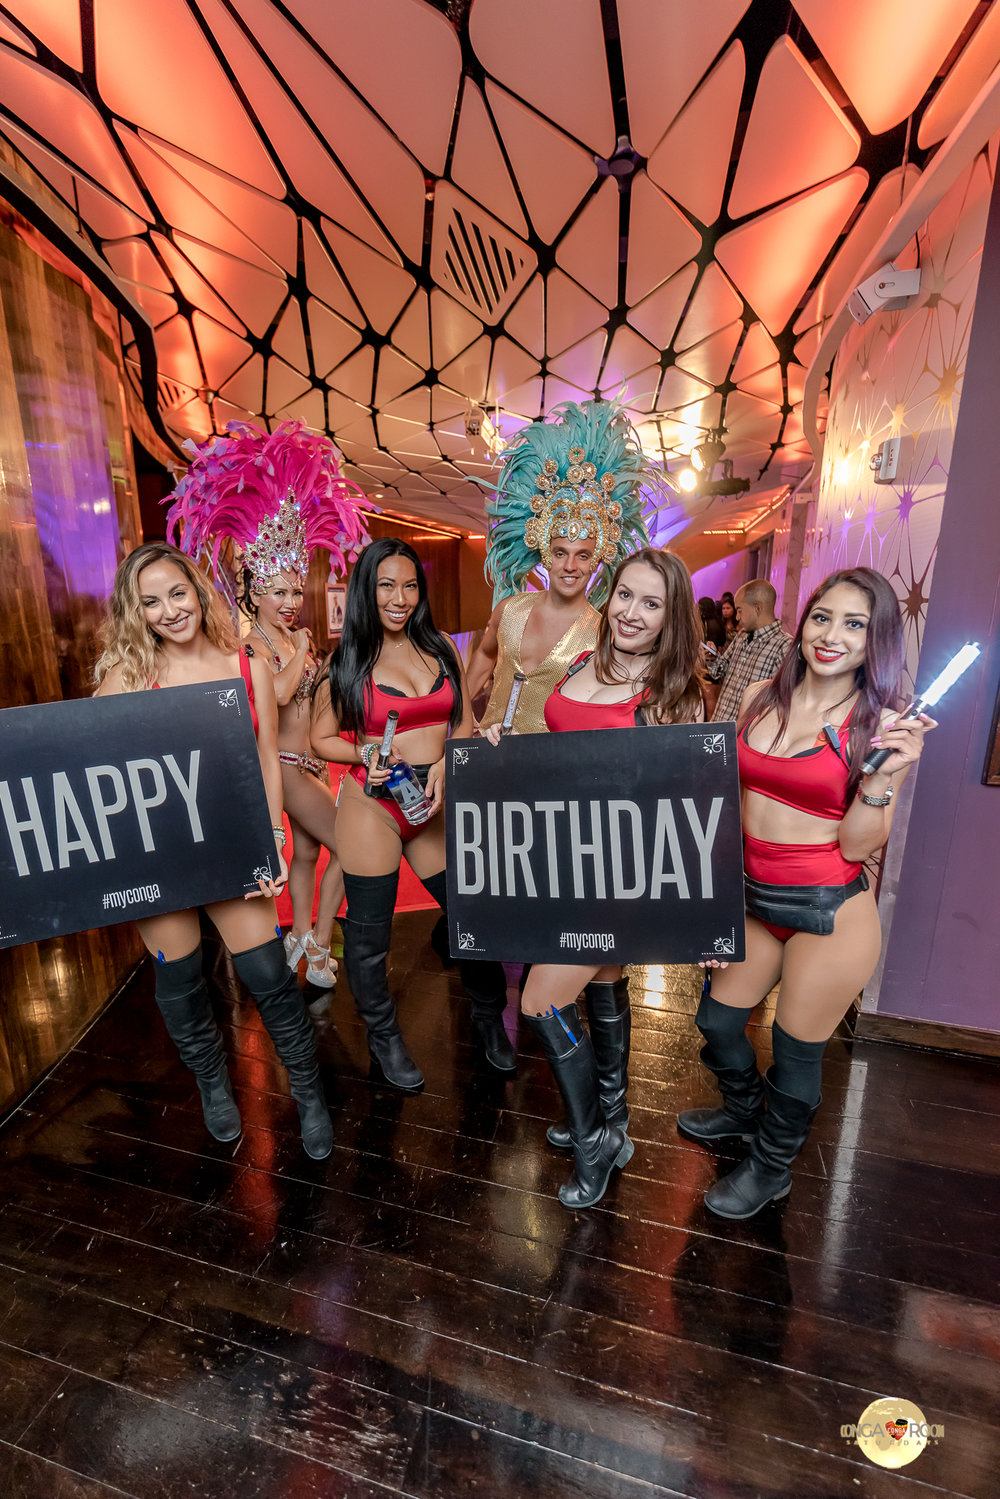 CONGA ROOM SATURDAYS - SATURDAY, SEPTEMBER 29, 2018